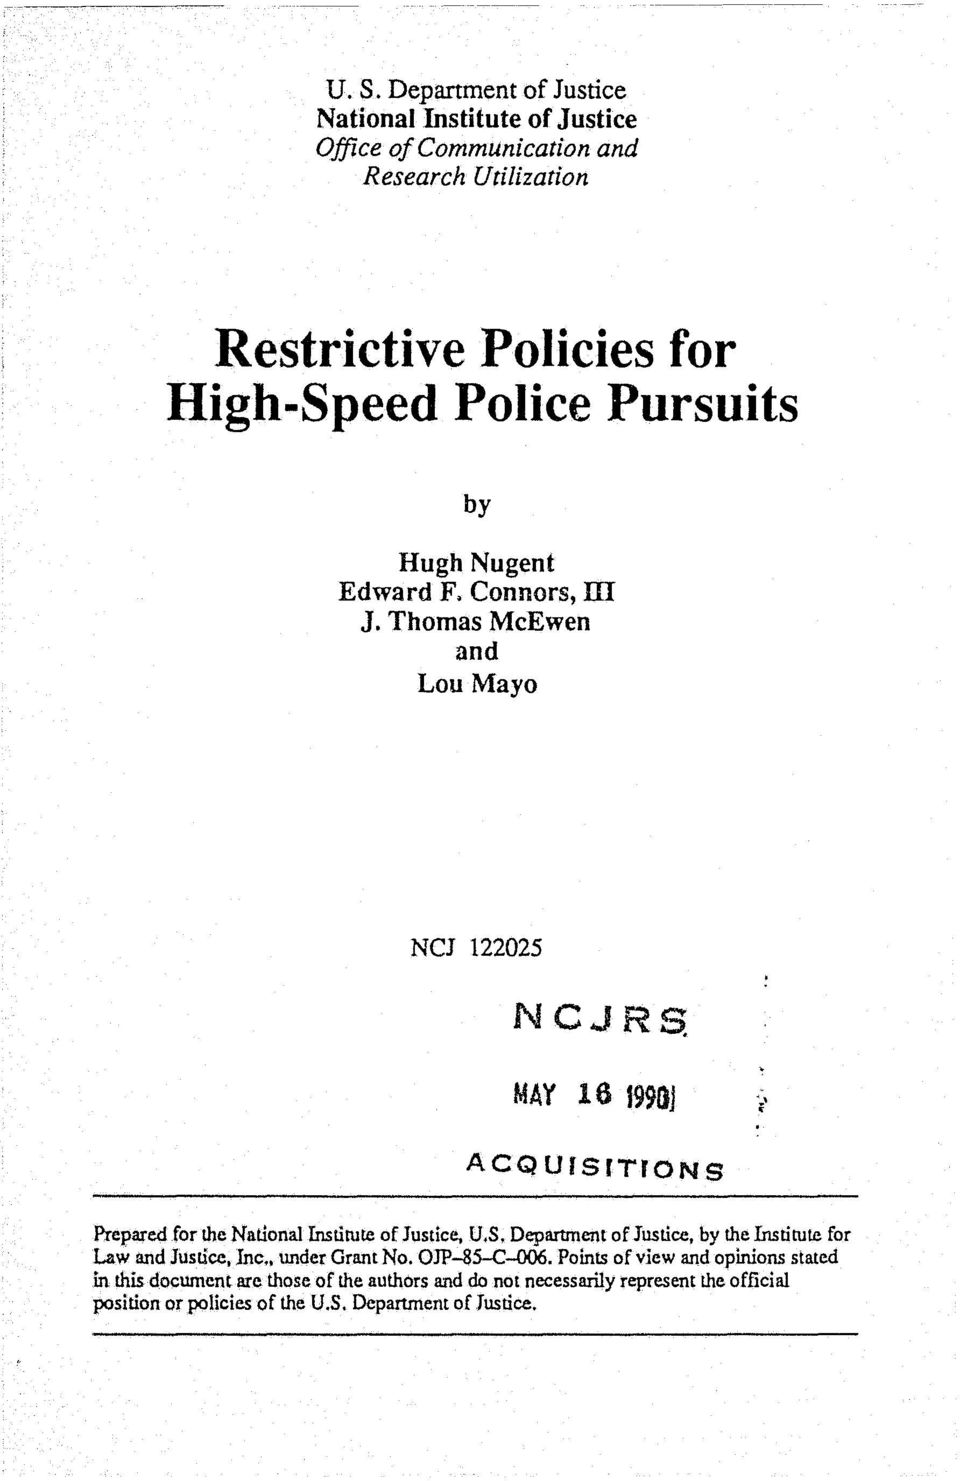 Thomas McEwen and Lou Mayo NCJ 122025 NCJRS MAY 16 1991)1 i' ACQUrSrTJONS Prepared for the National fnstitute of Justice, U.S. Department of Justice, by the Institute for Law and Justice, Inc.